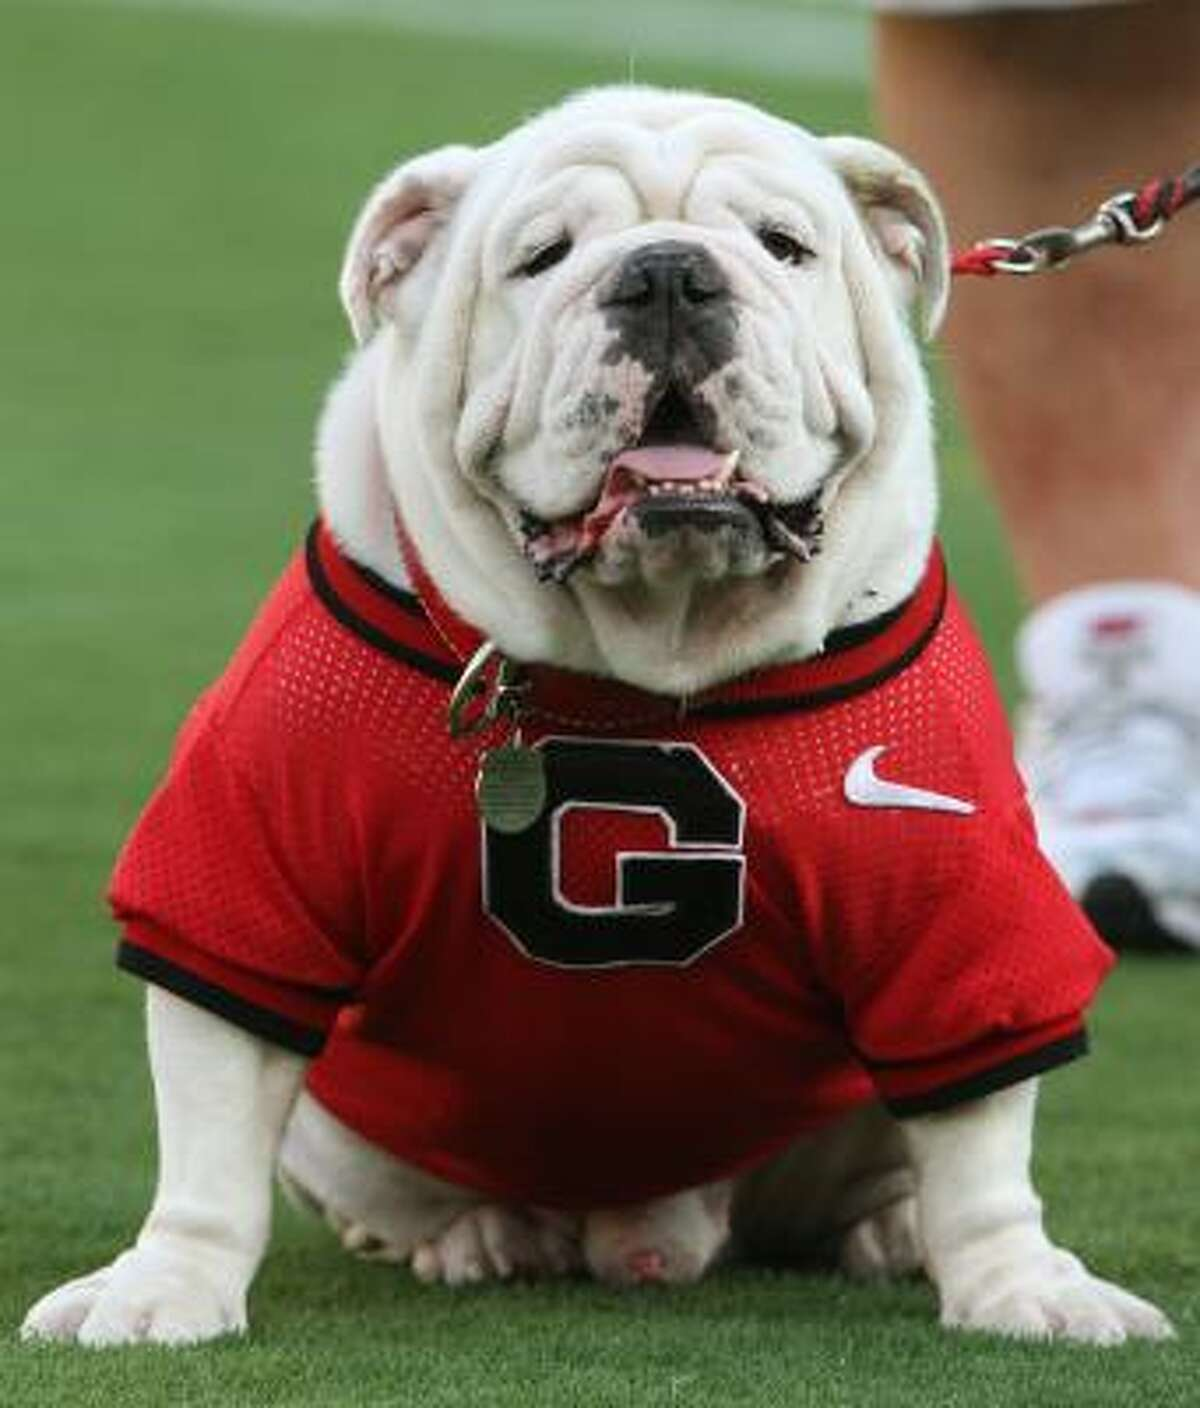 FILE - In this Sept. 20, 2008 file photo, Uga VII, the seventh English bulldog mascot for the University of Georgia team, who died last football season, keeps to the sidelines in Tempe, Ariz. (AP Photo/Ross D. Franklin, File)